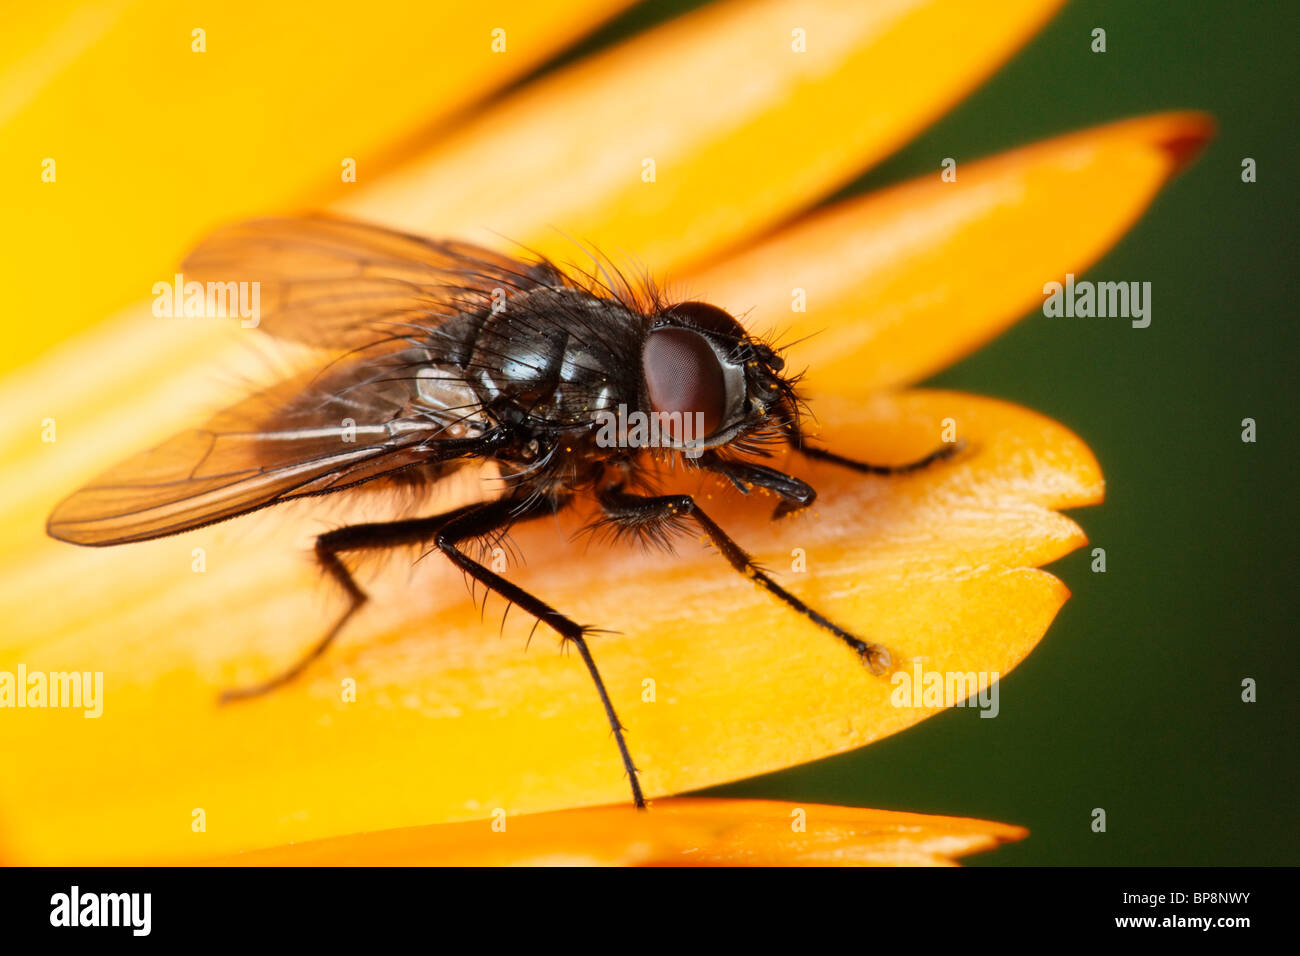 Fly on a Marigold flower. Stock Photo